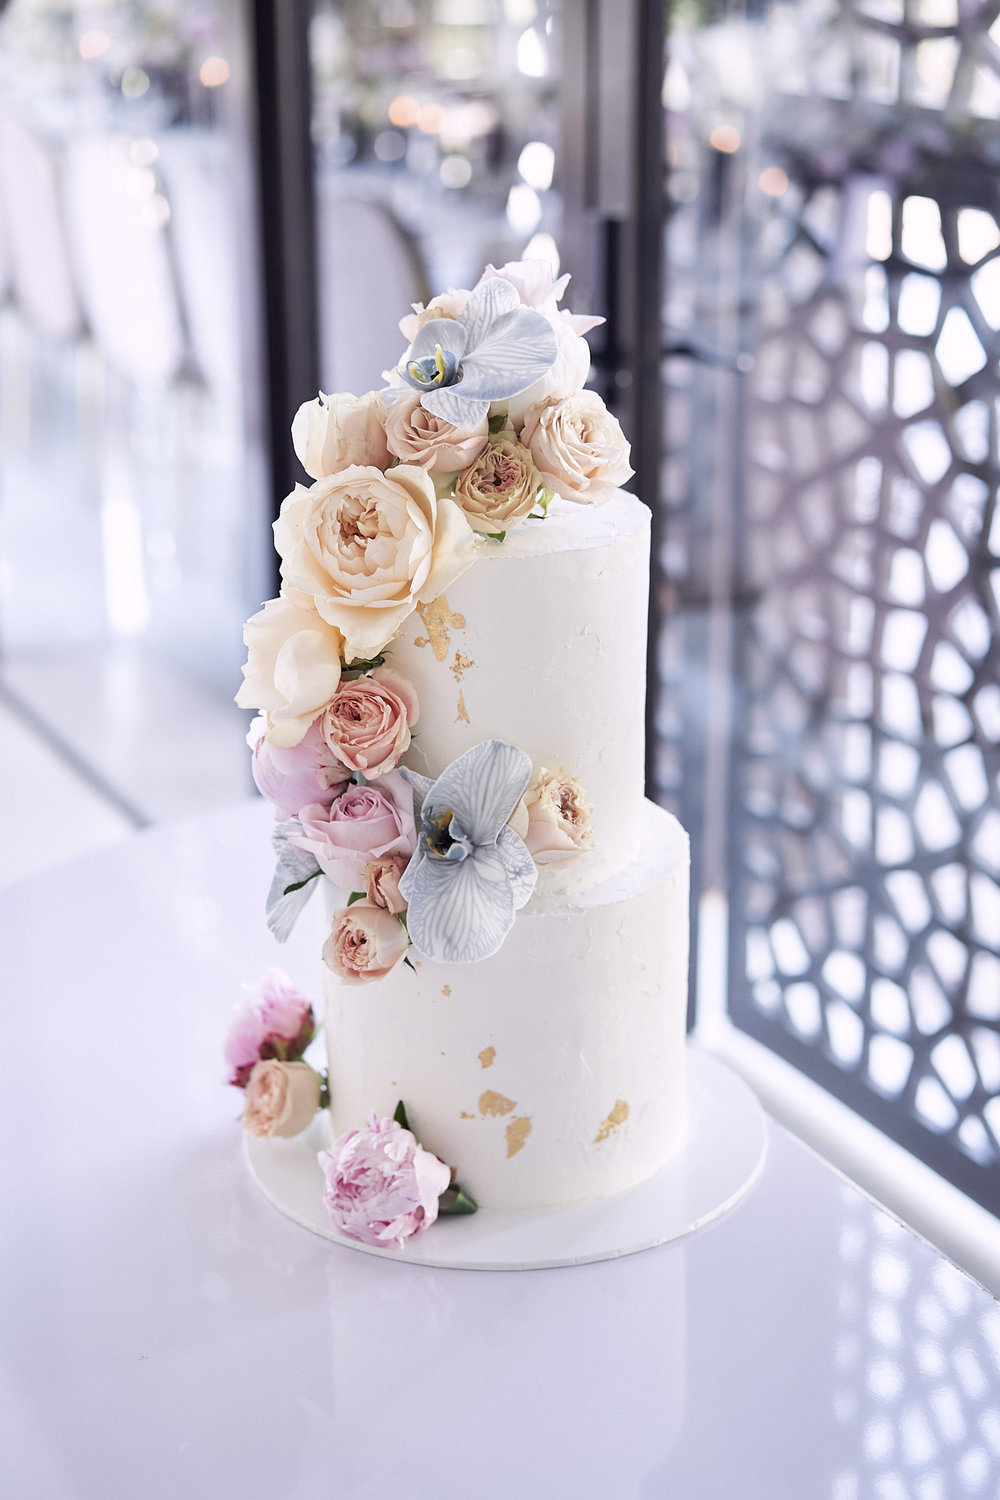 wedding cake inspiration. Photo by Lost In Love Photography